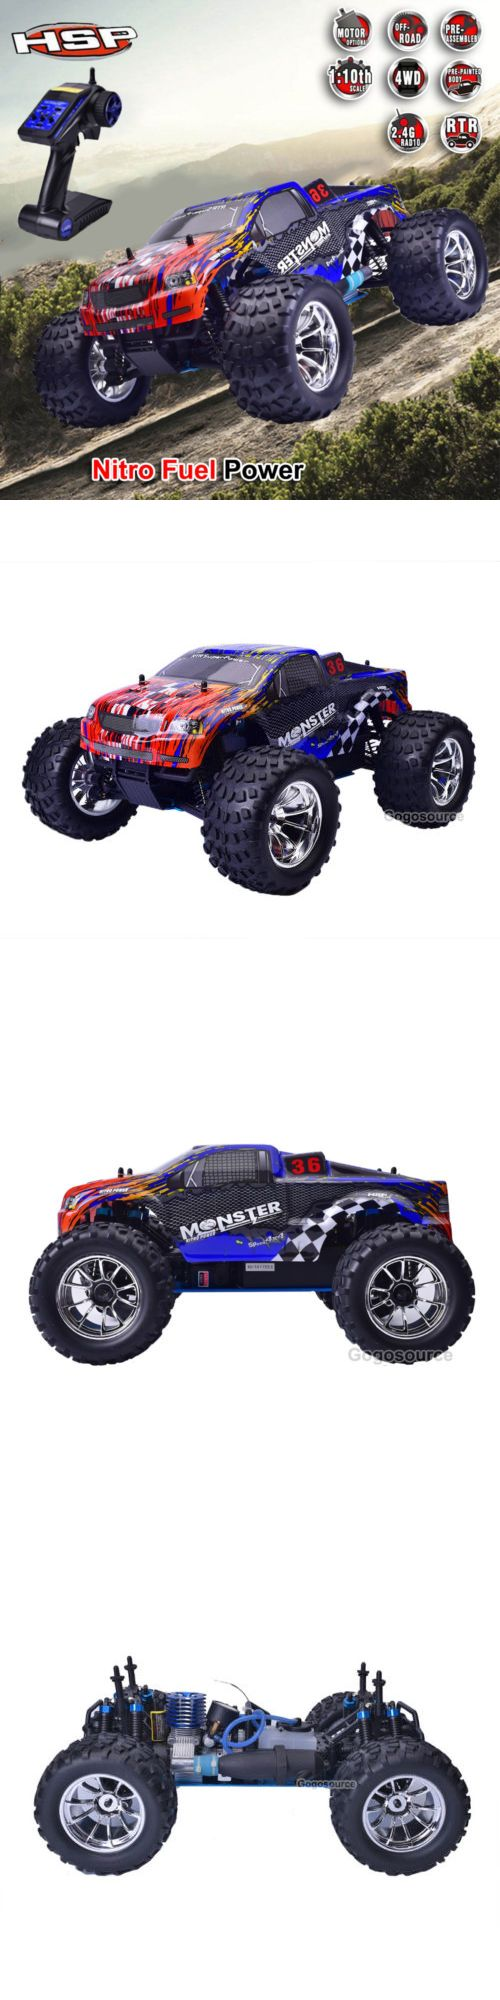 Cars trucks and motorcycles 182183 hsp 94188 4wd 1 10 off road monster truck